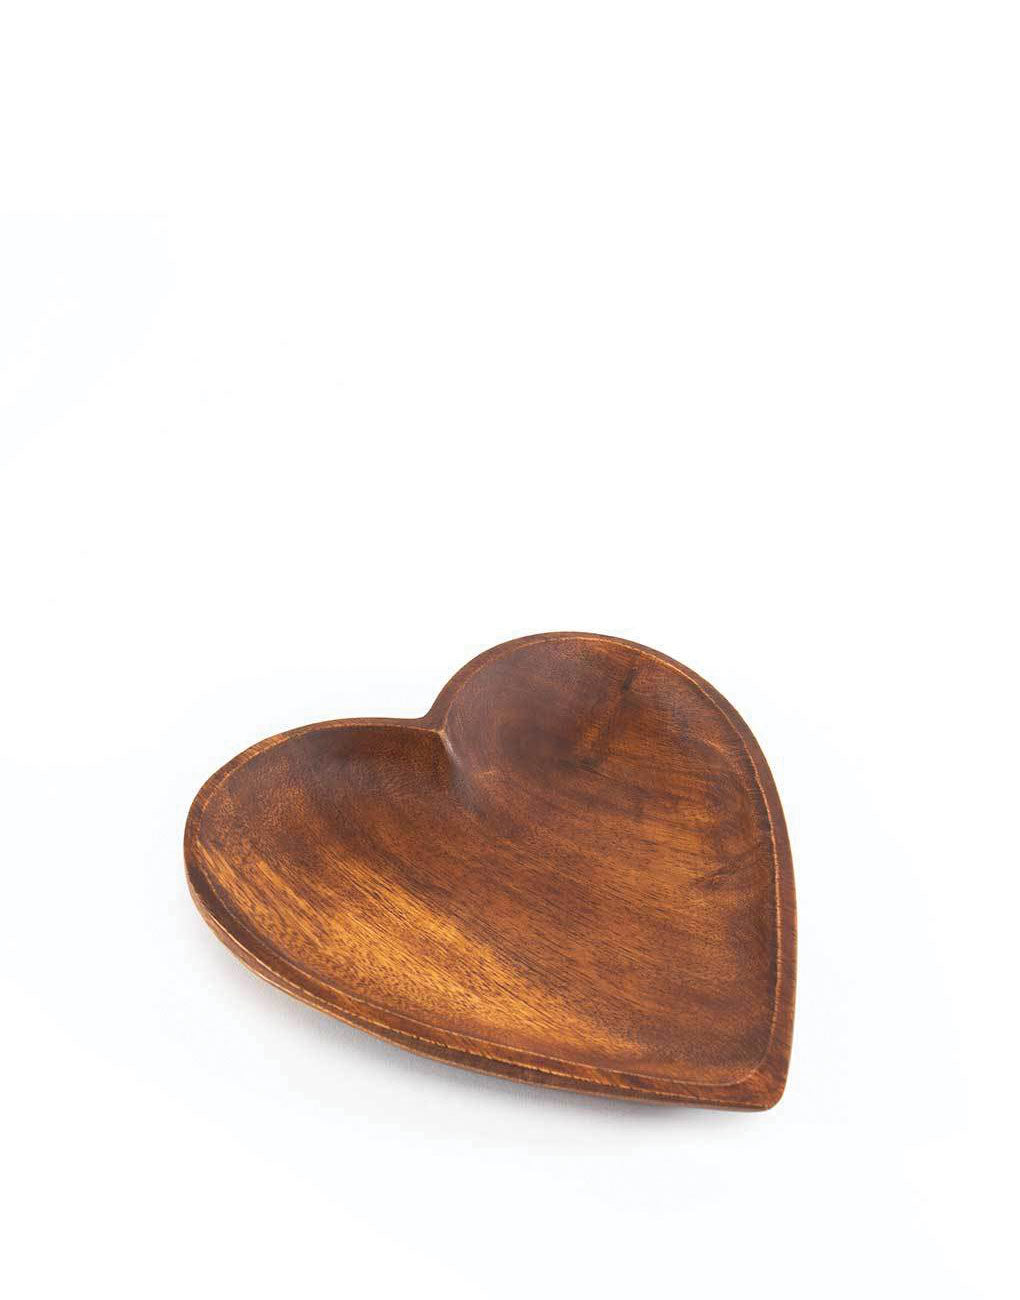 Large Acacia Wood Heart Tray | The Little Market